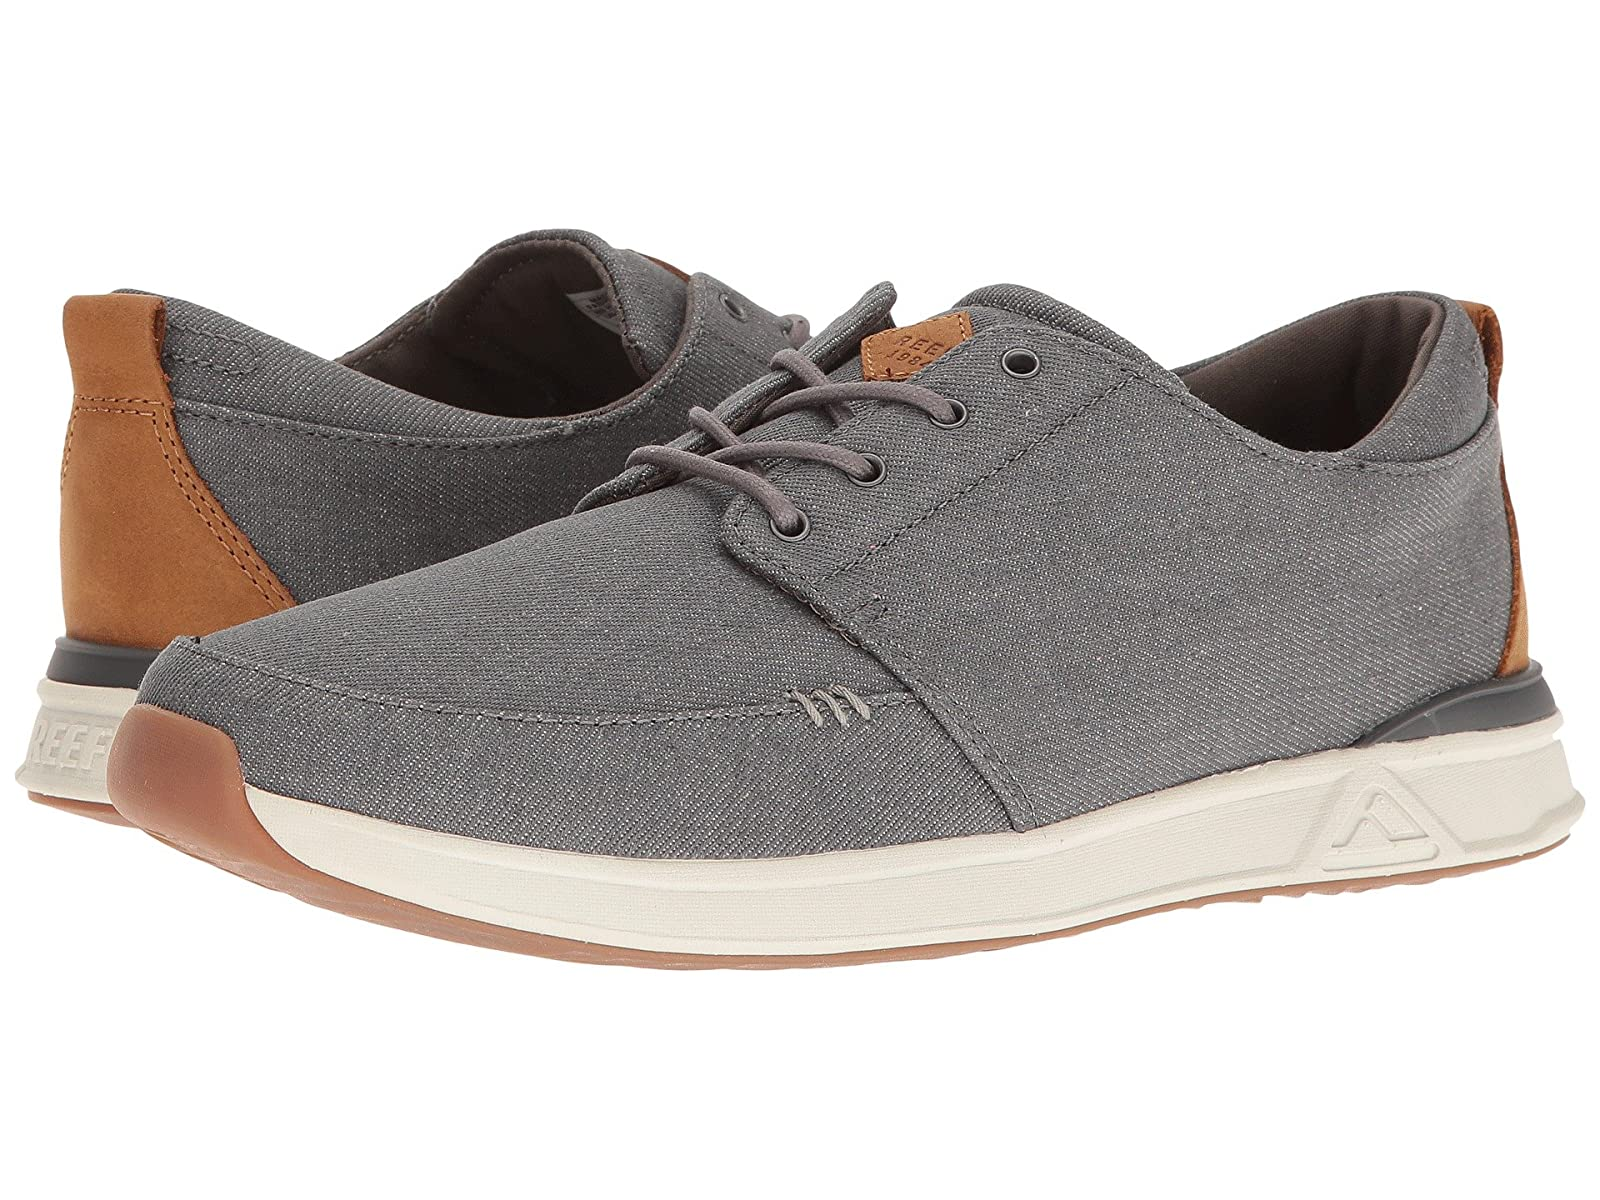 Reef Rover Low TXCheap and distinctive eye-catching shoes